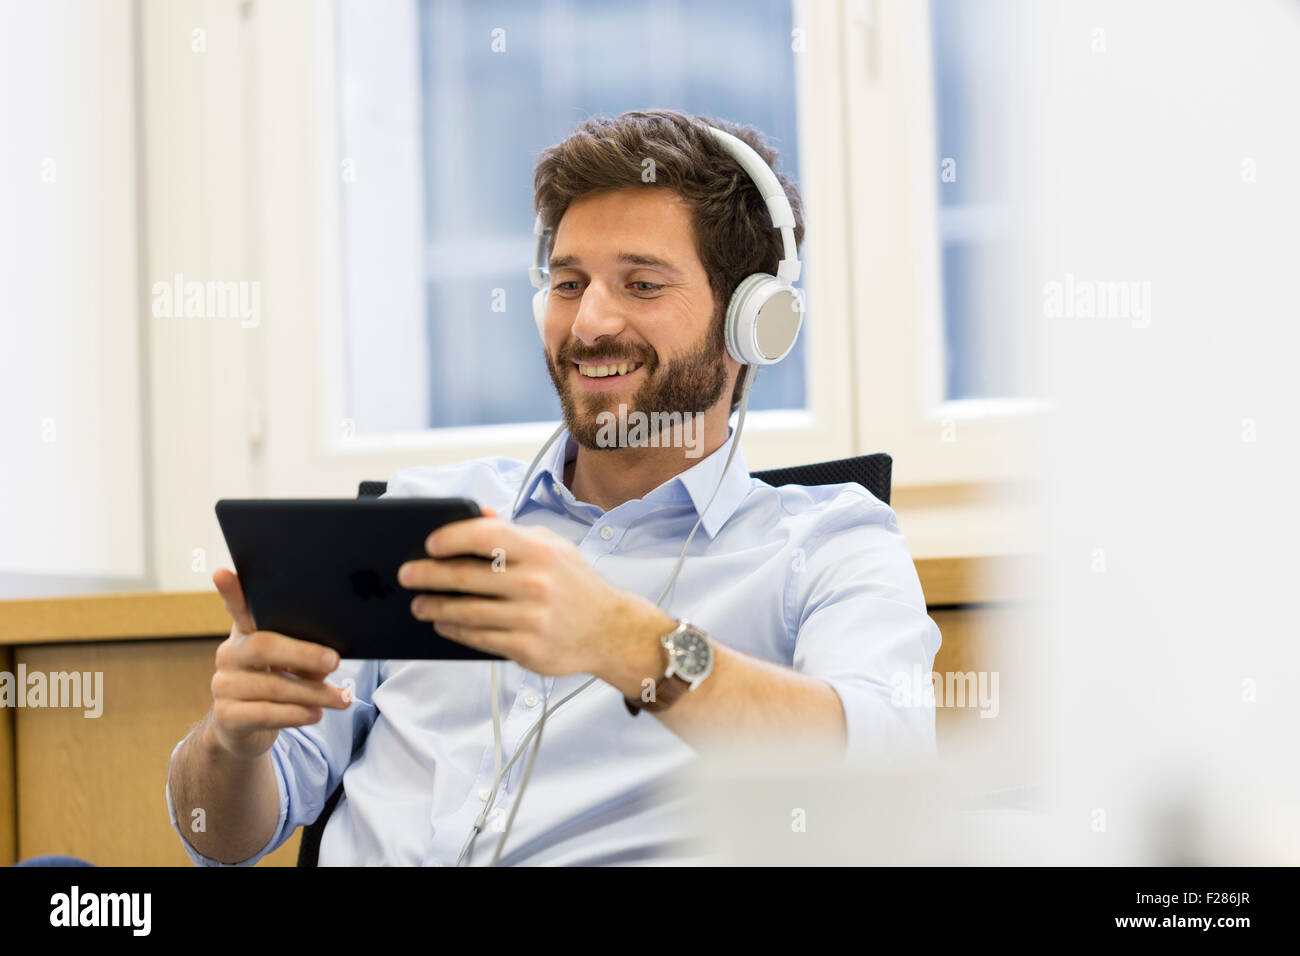 Creative businessman listening to headphones and using digital tablet Banque D'Images